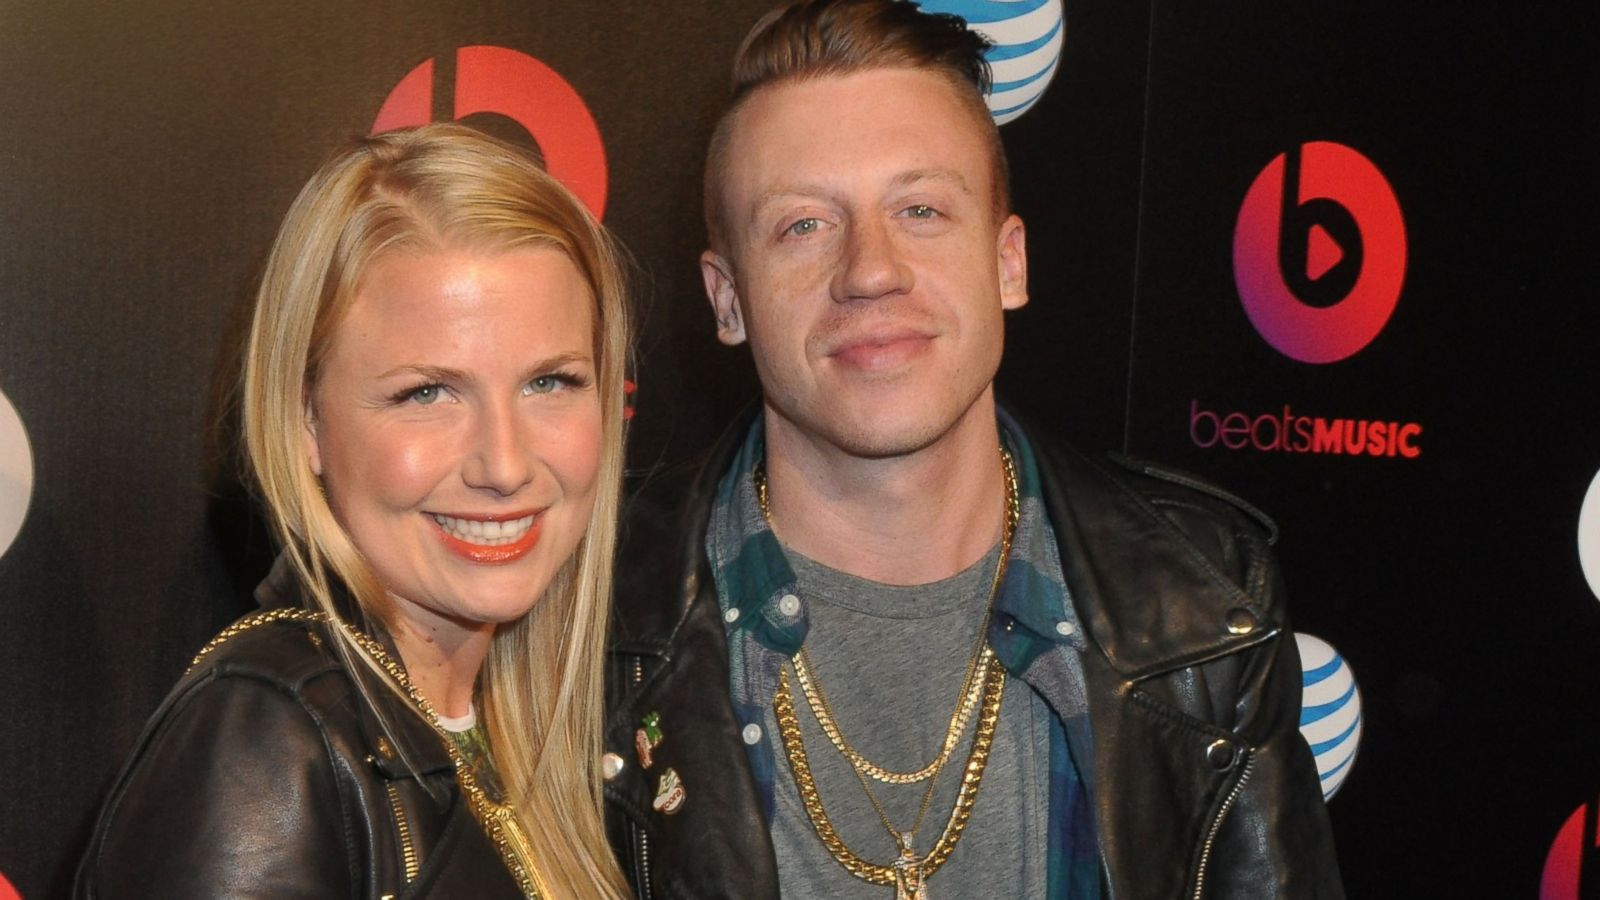 watch rapper macklemore announce he's going to be a dad - abc news